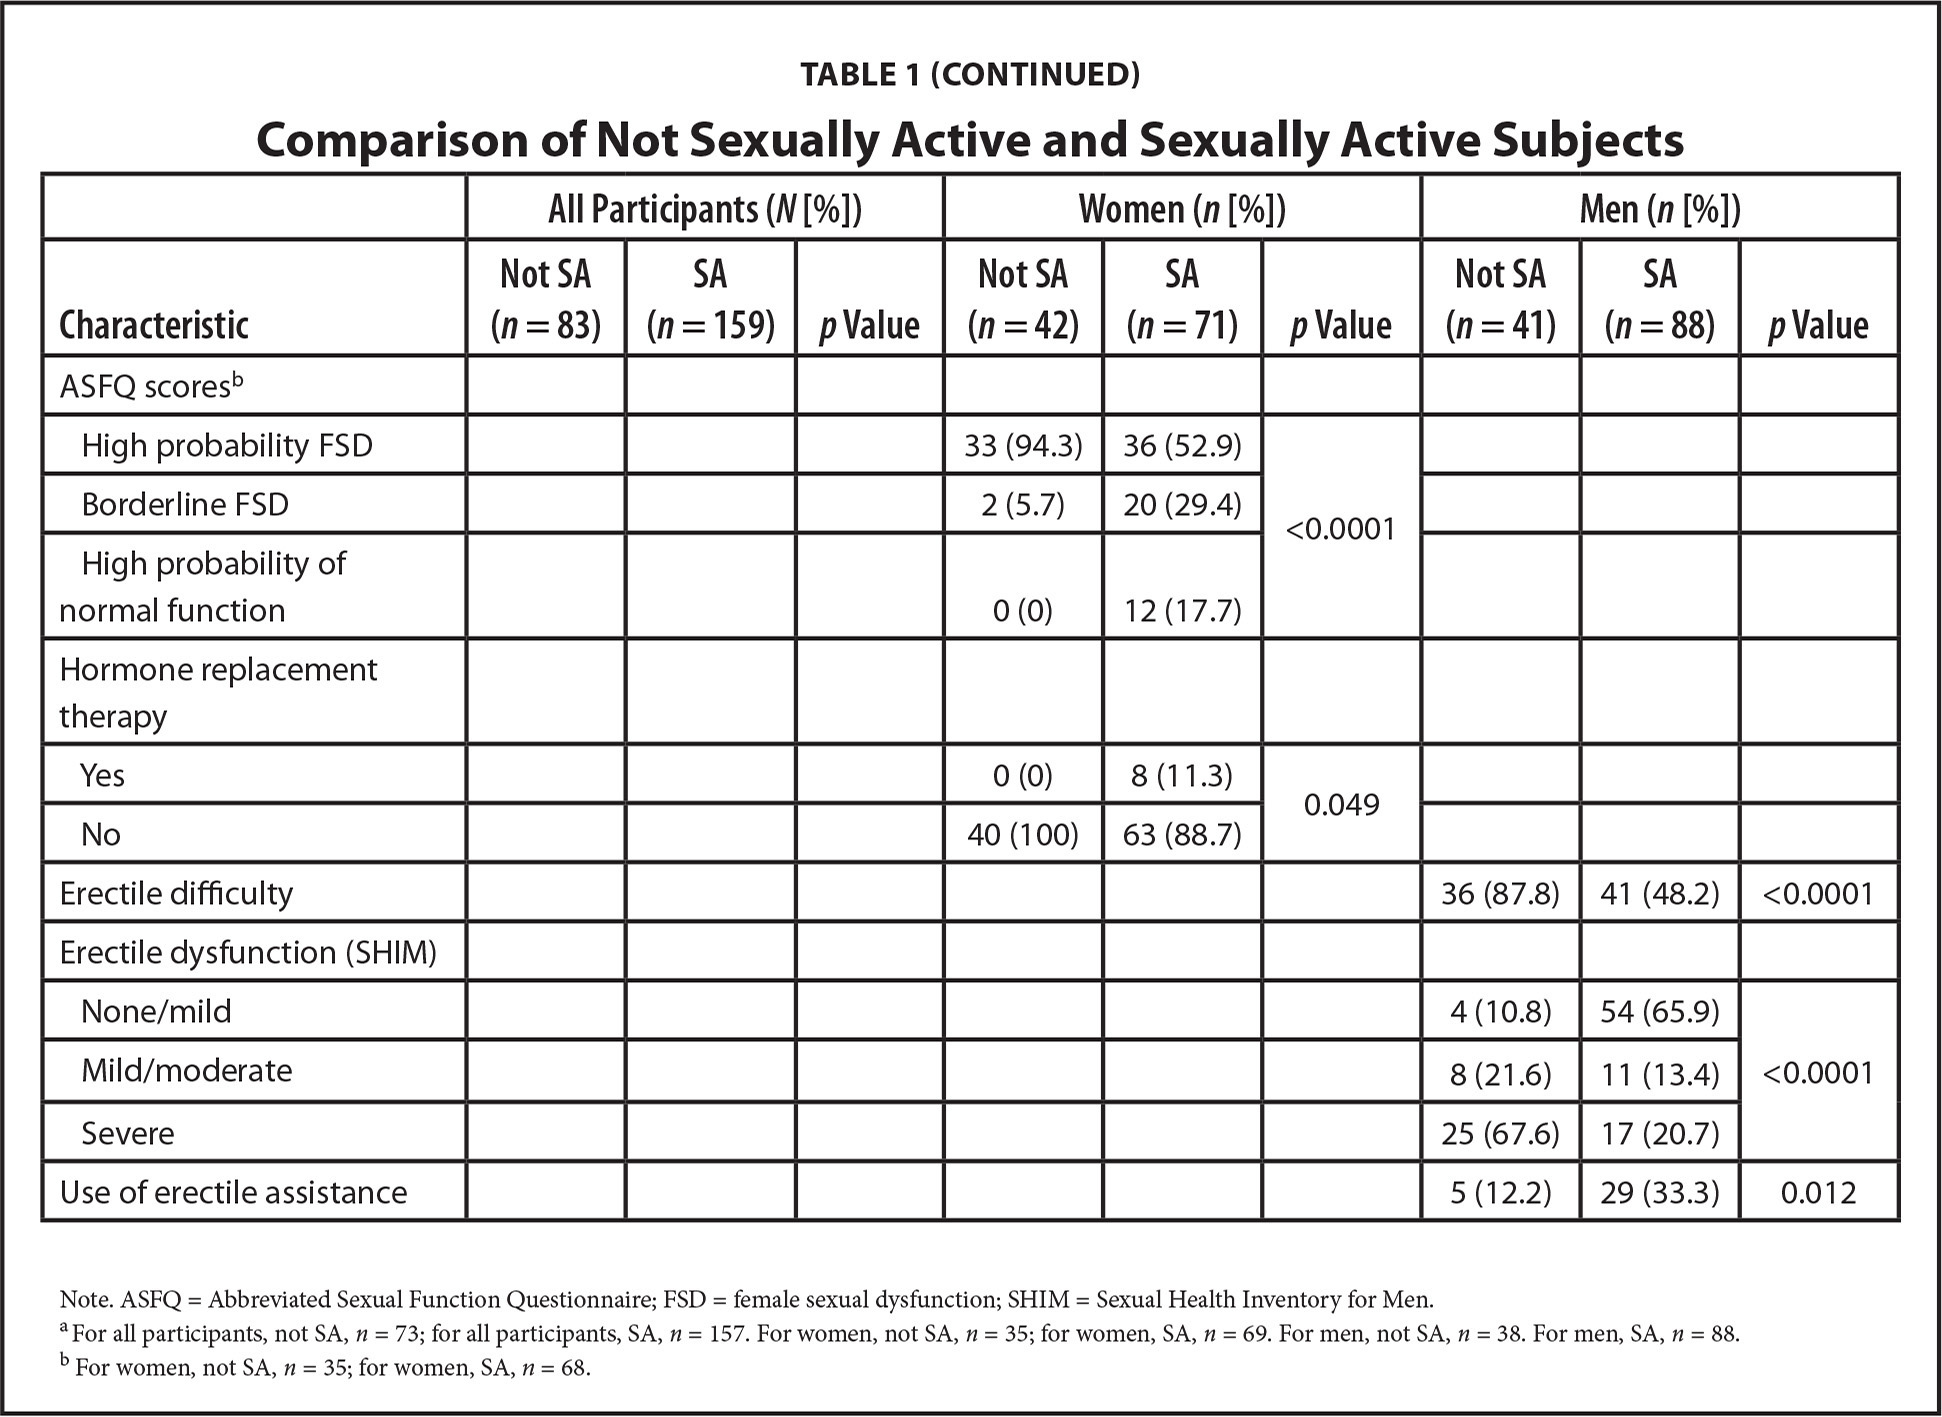 Comparison of Not Sexually Active and Sexually Active Subjects